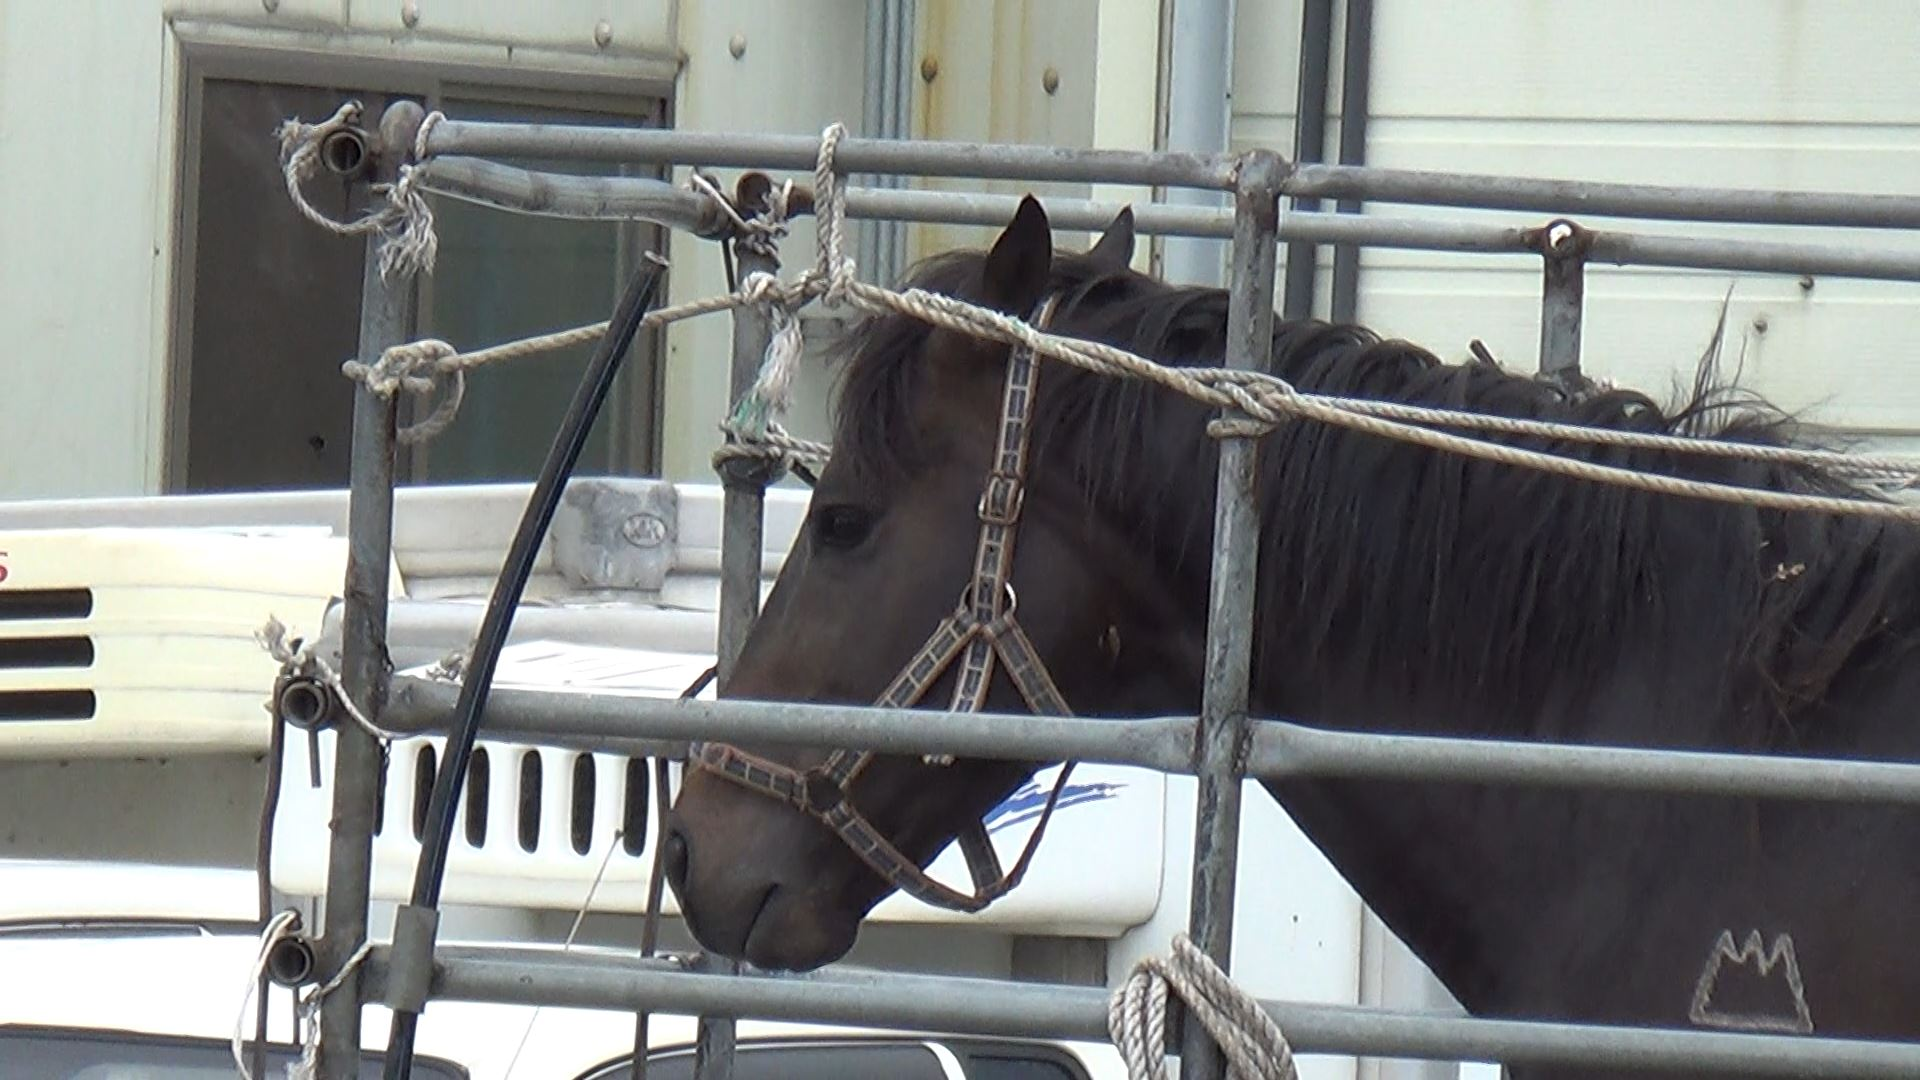 Seungja Yechan stands at the slaughterhouse. To his left is one of the black poles used to strike the horses.